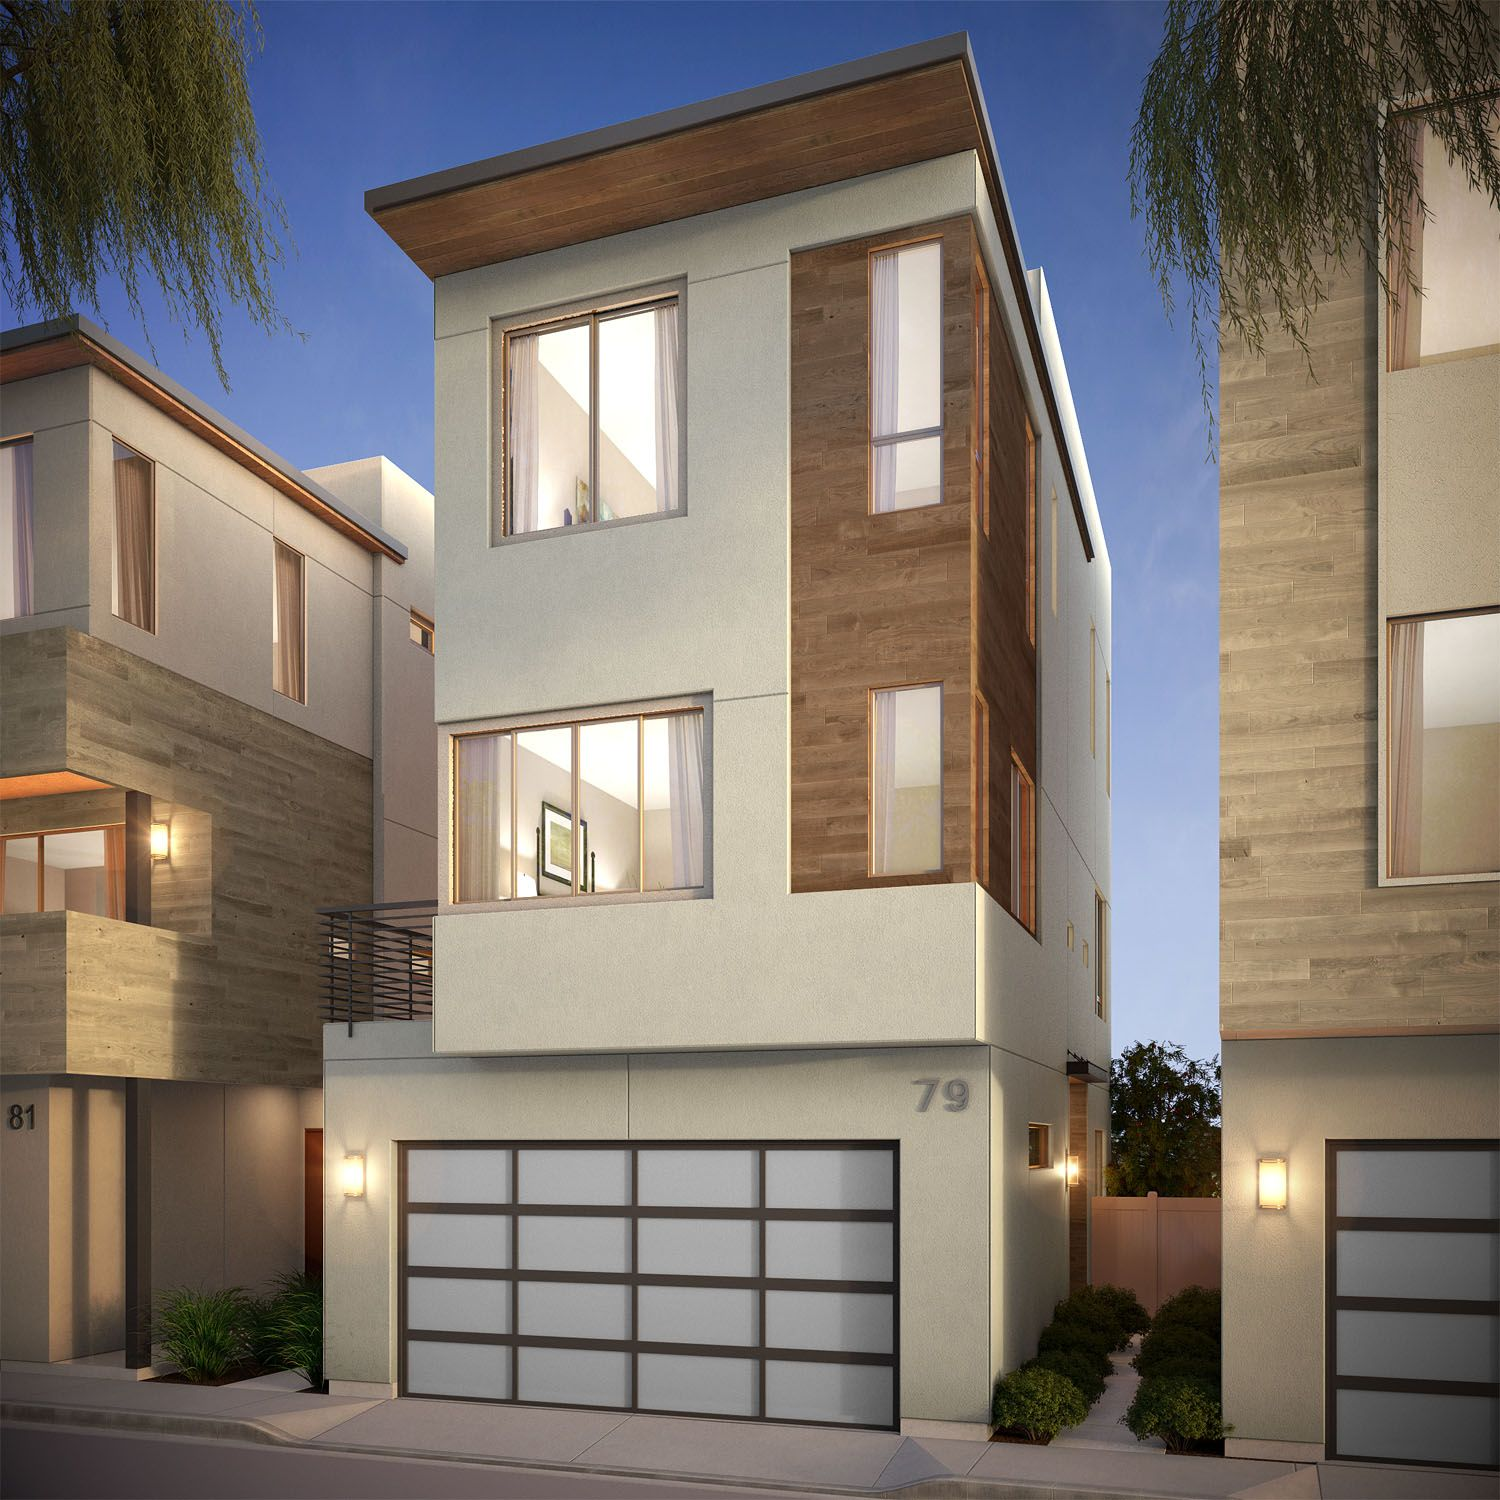 Single Family for Sale at Ebb Tide By Mbk Homes - Residence 1 Harbor 1560 Placentia Ave Newport Beach, California 92663 United States